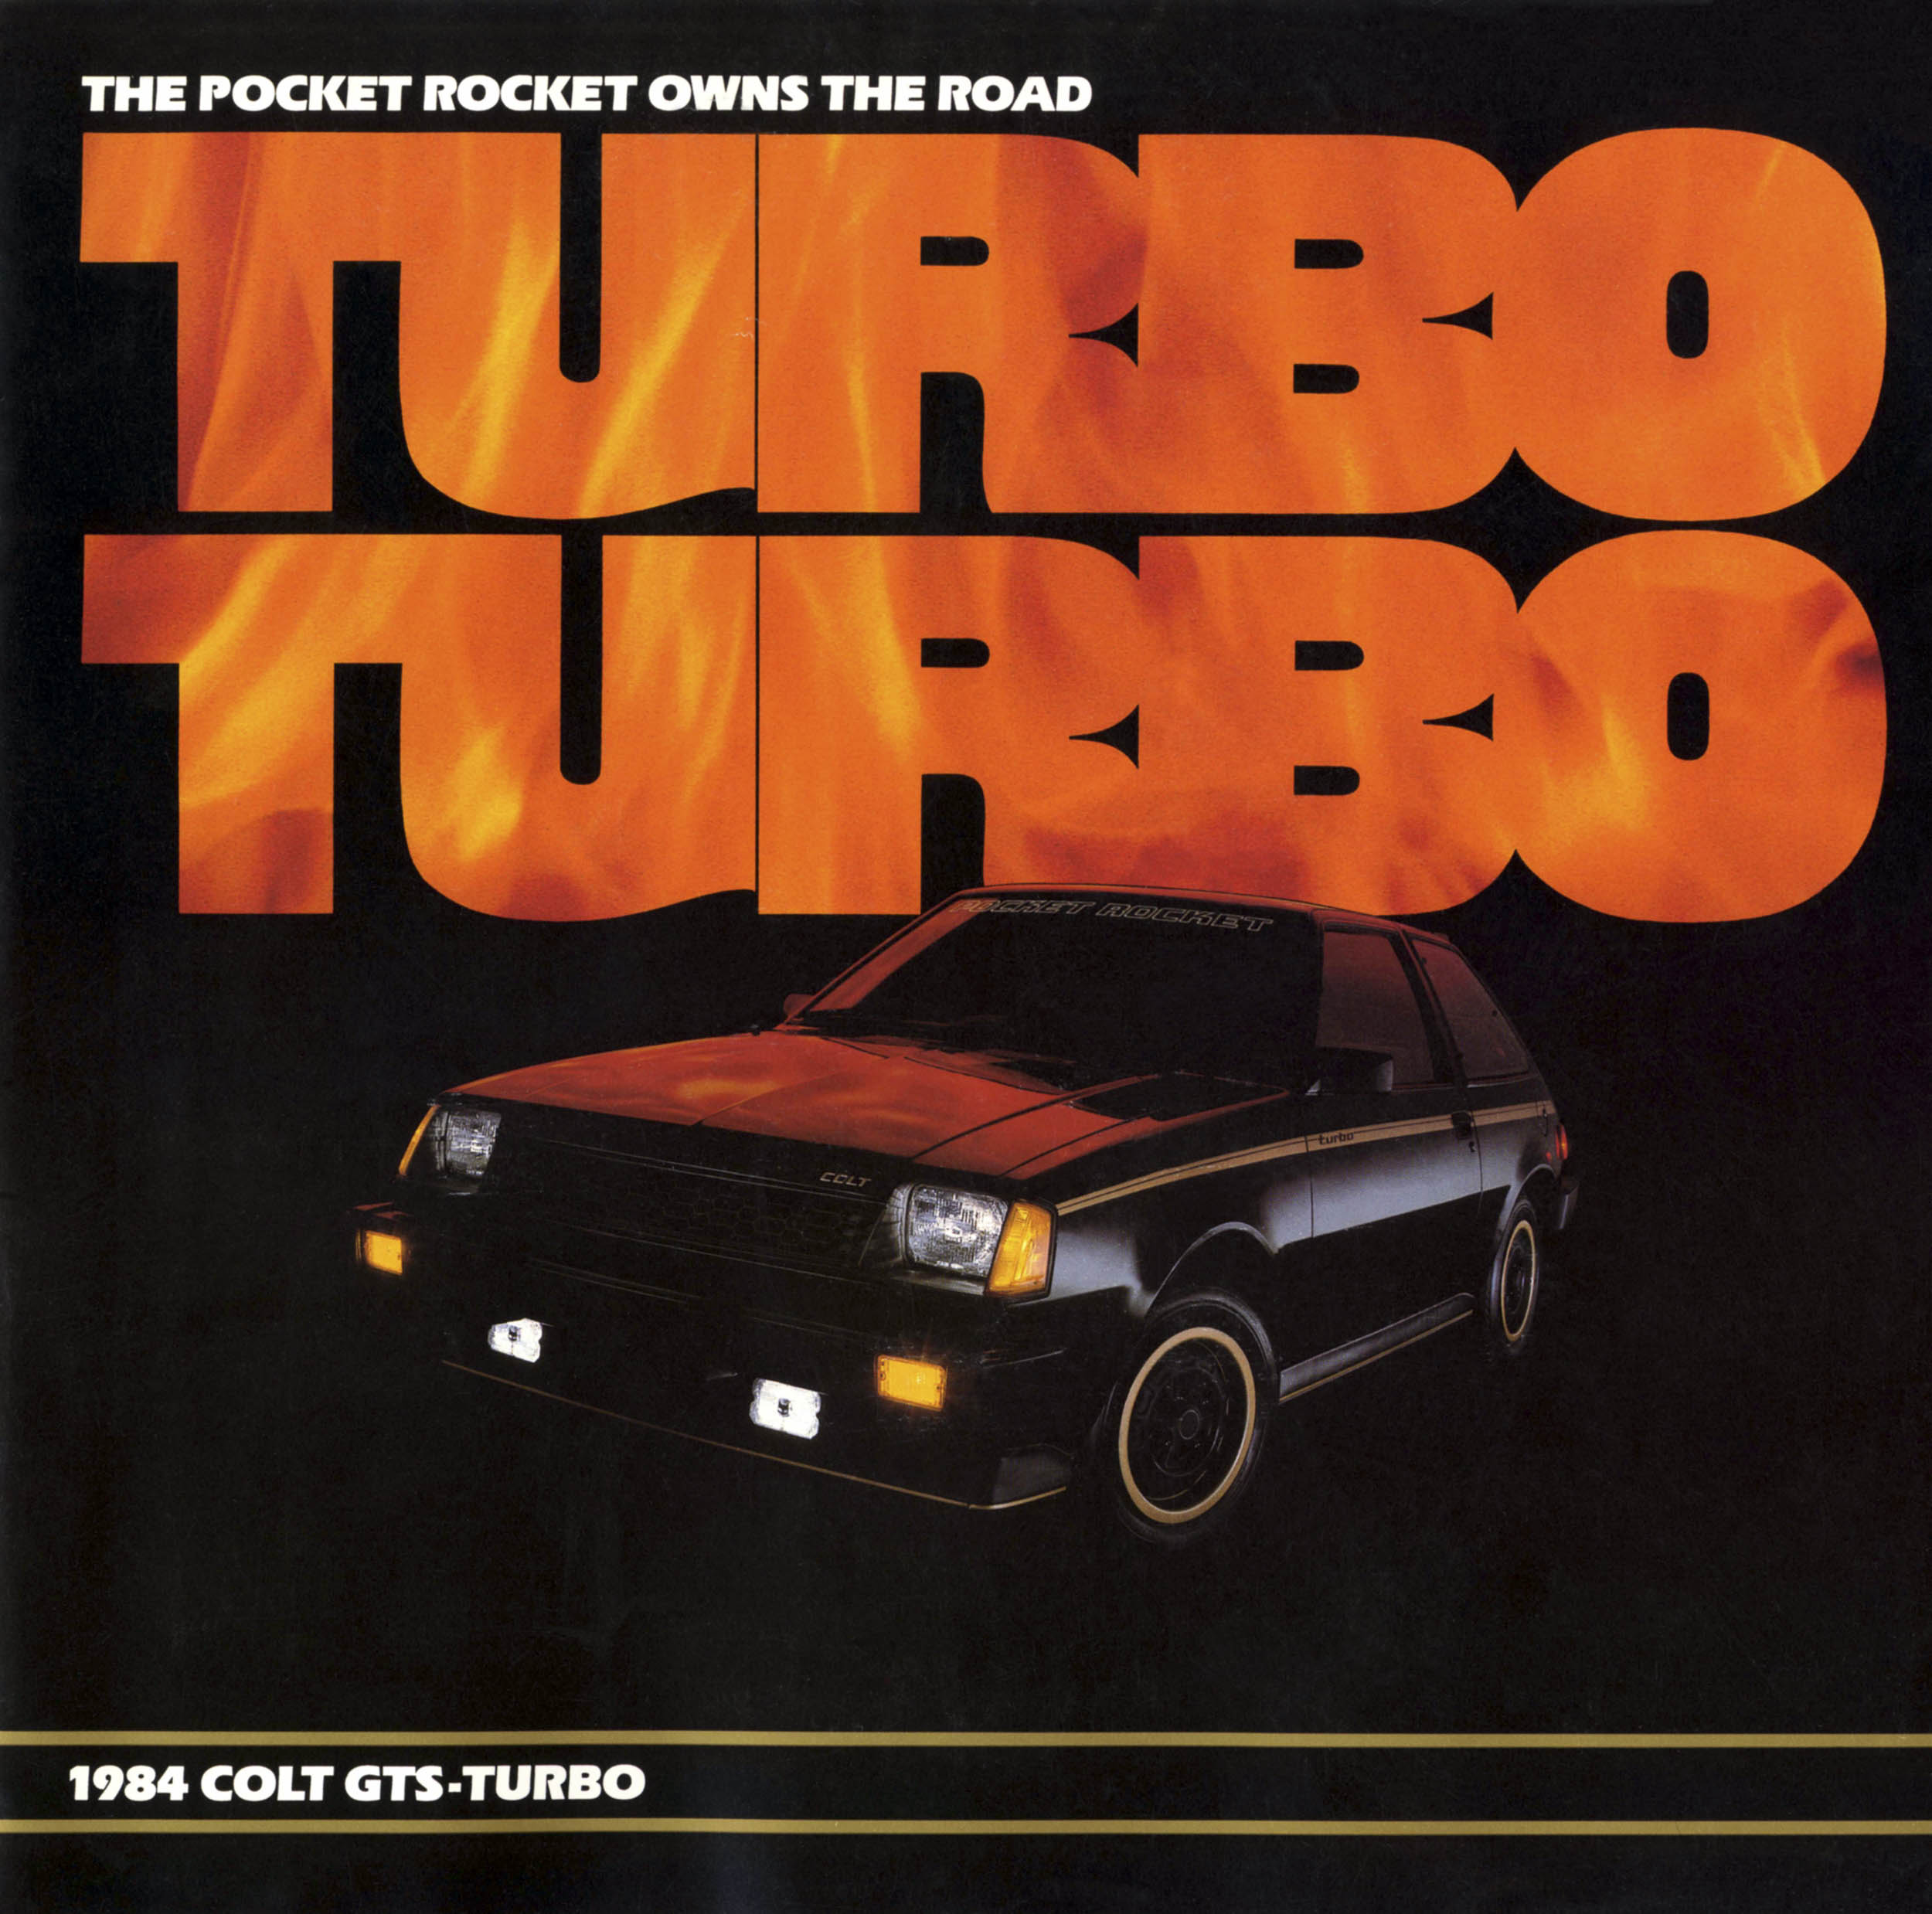 The 1984 Dodge Colt GTS packed a 30-plus horsepower bump from the naturally-aspirated base model and retained the Twin Stick dual-range four-speed transmission for turbo power and economy.